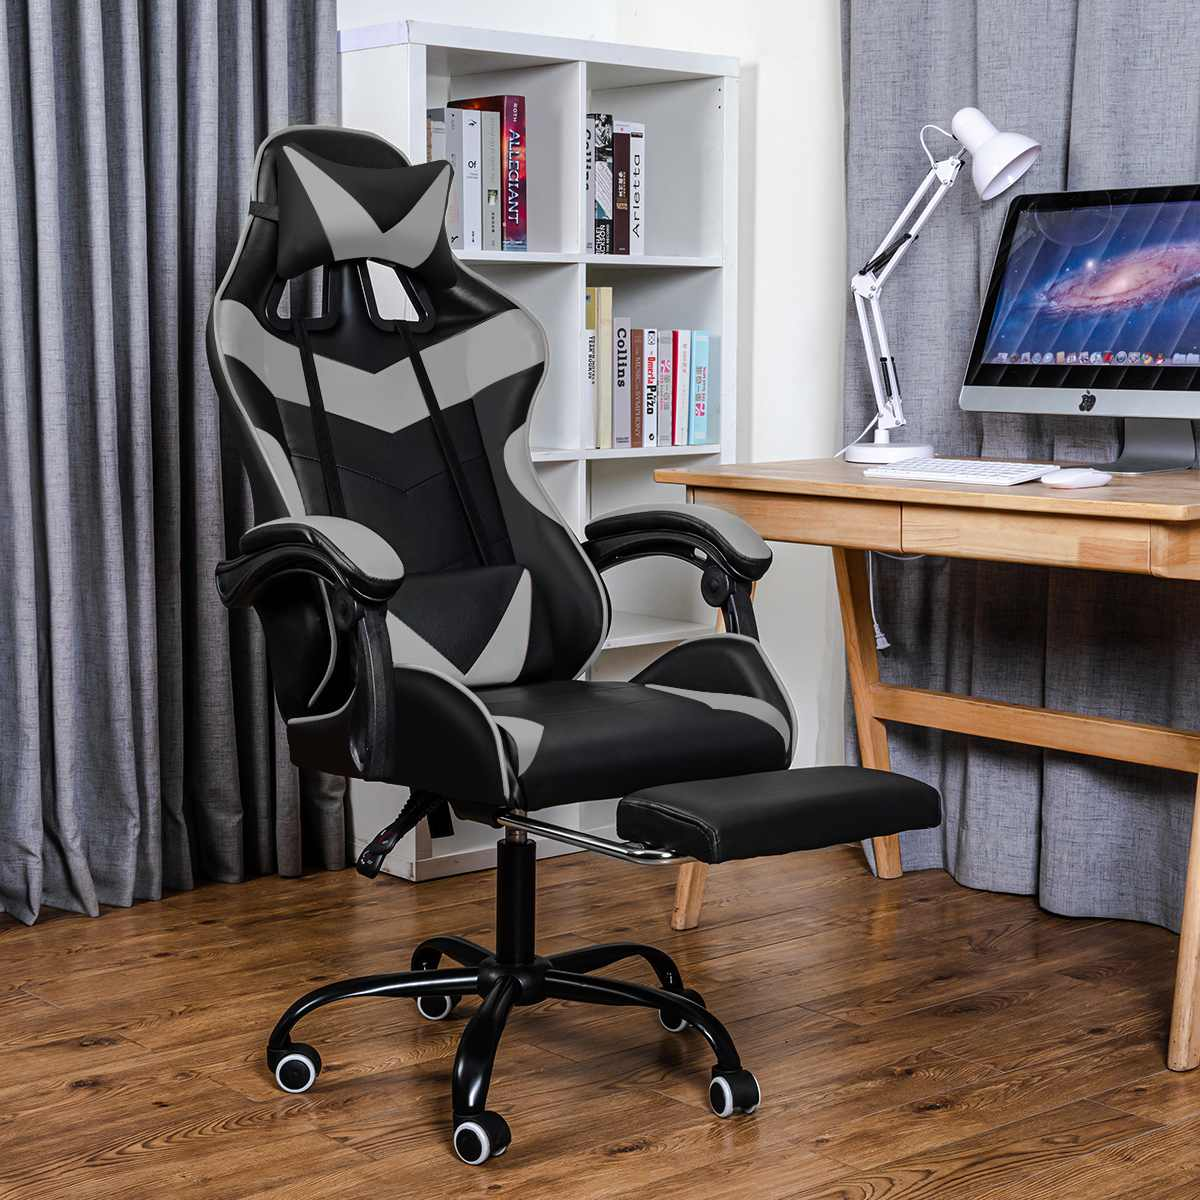 H61e2e5575f9a44afb4cc8dcffeee372bj - Office Chair Gaming Computer Chair Racing Reclining High Back Computer Game Office Chair Ergonomic Desk Chairs Chaise Gaming